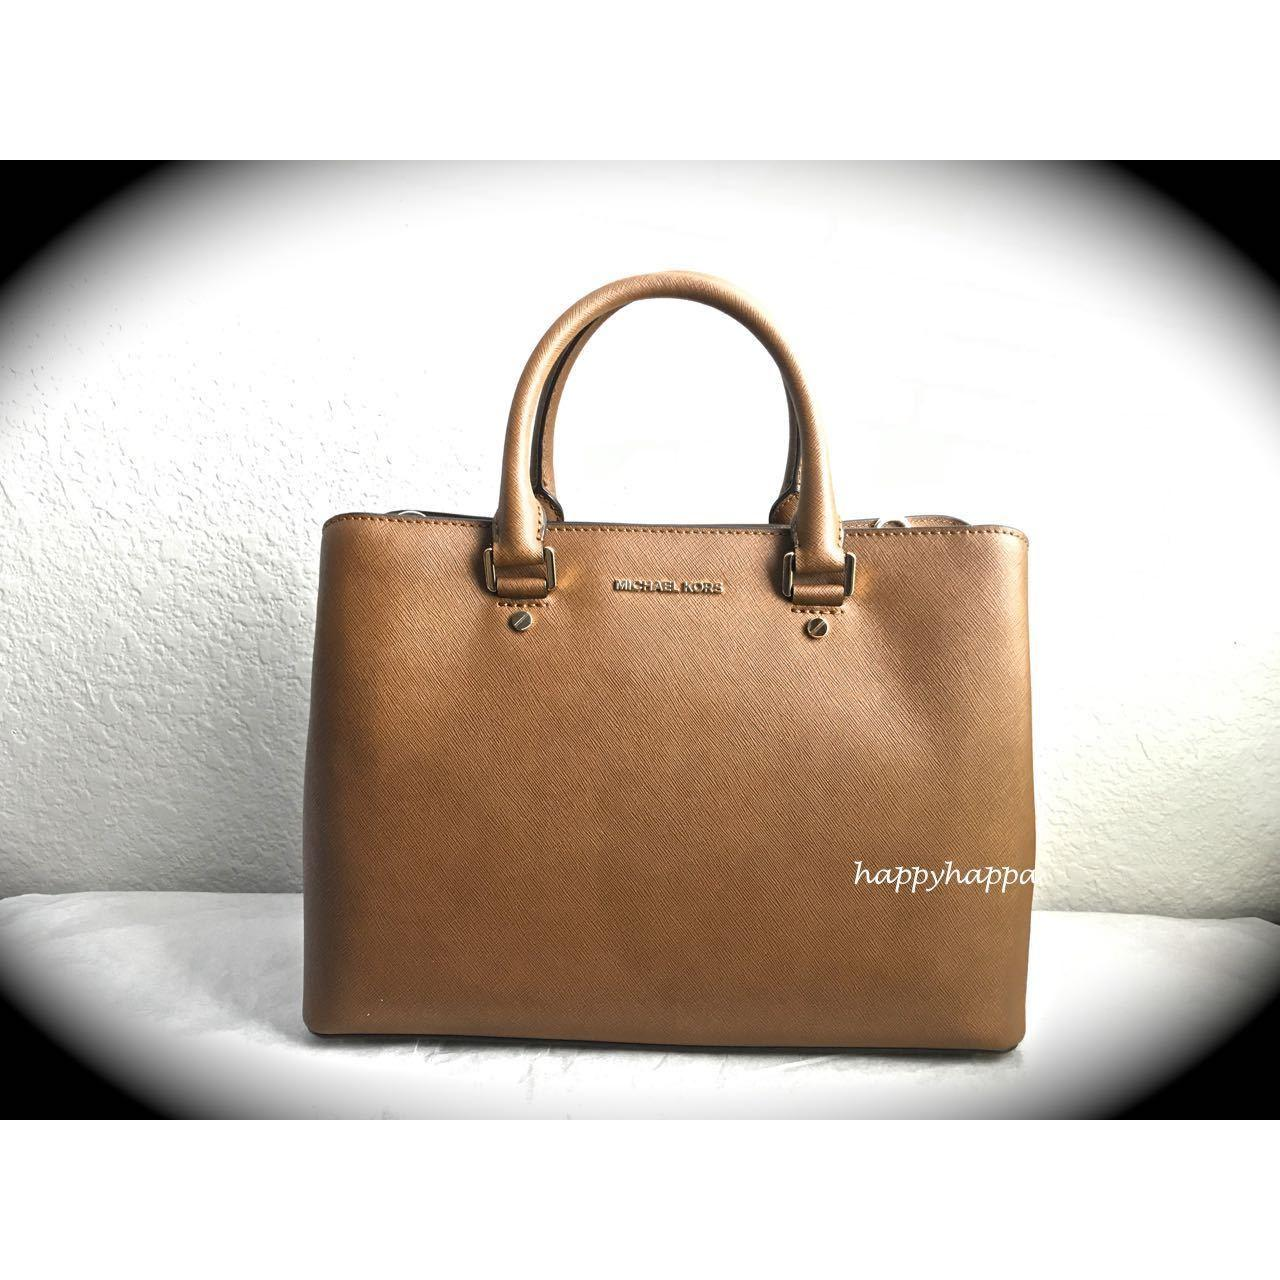 【MICHAEL KORS】破格SALE!!特別入荷☆savannah satchel☆A4収納 1